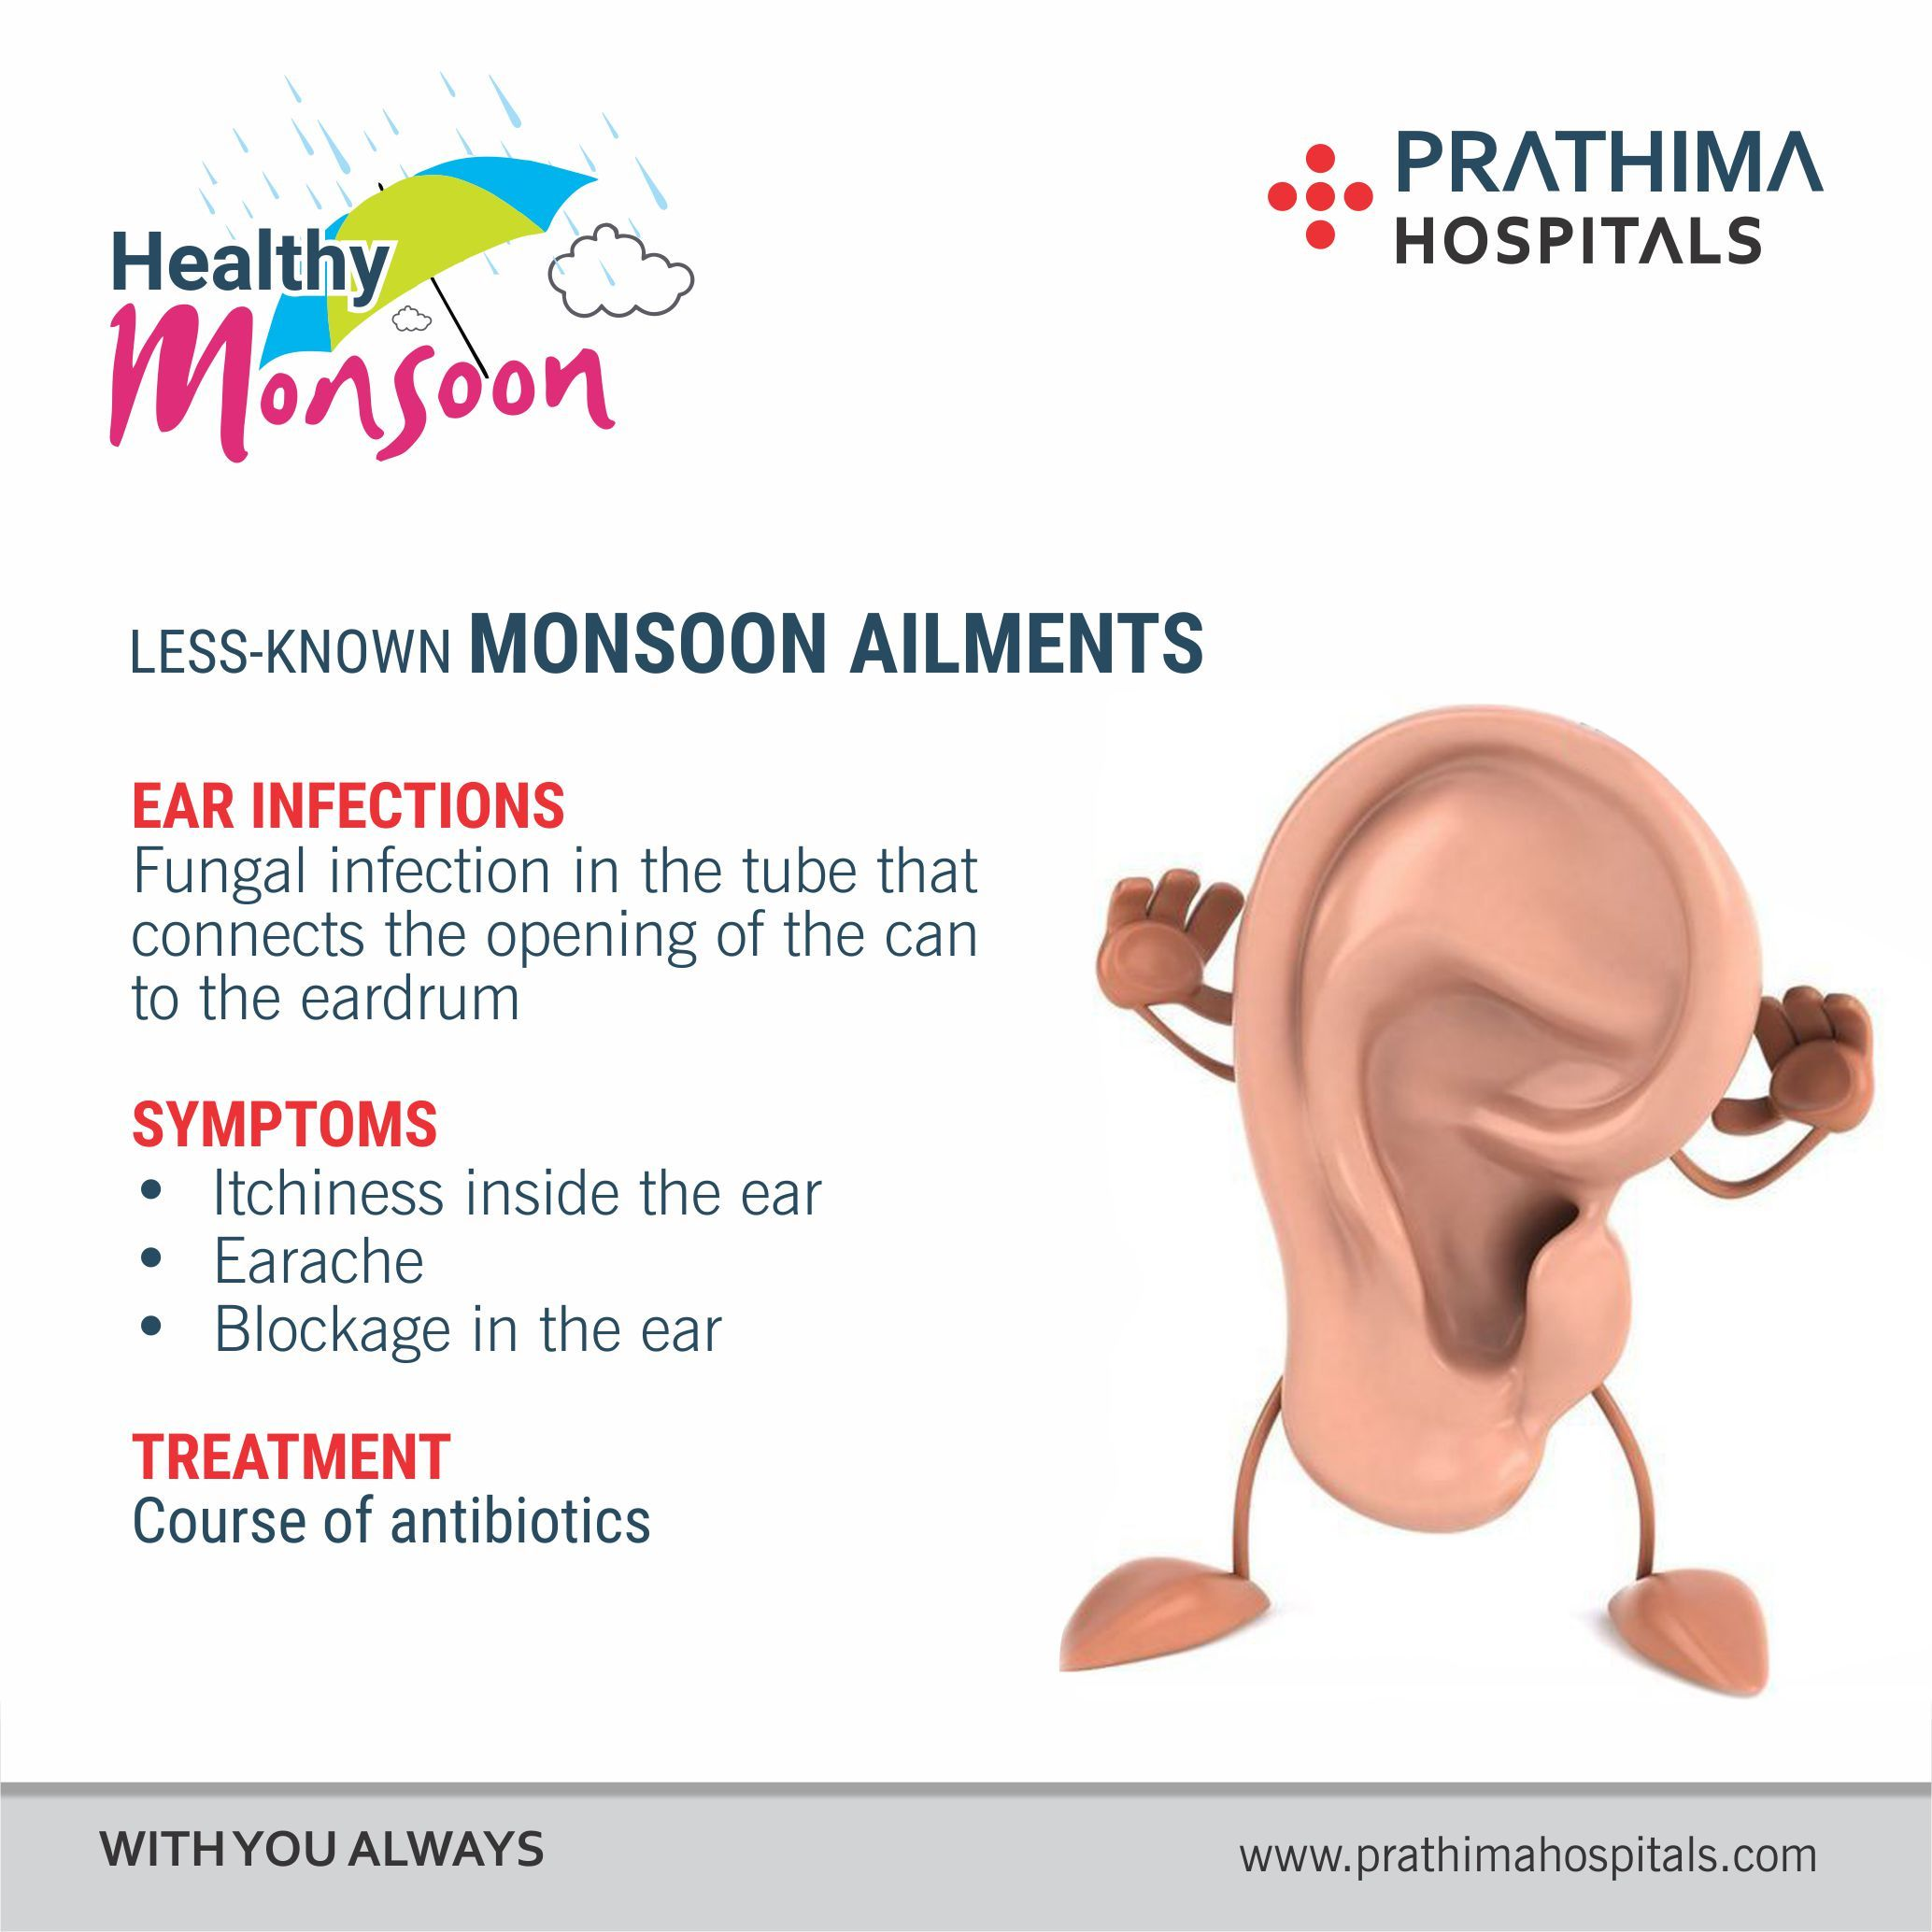 What Are The Signs And Symptoms Of Ear Infection Ear Infection Middle Ear Infection Symptoms First Aid Treatment